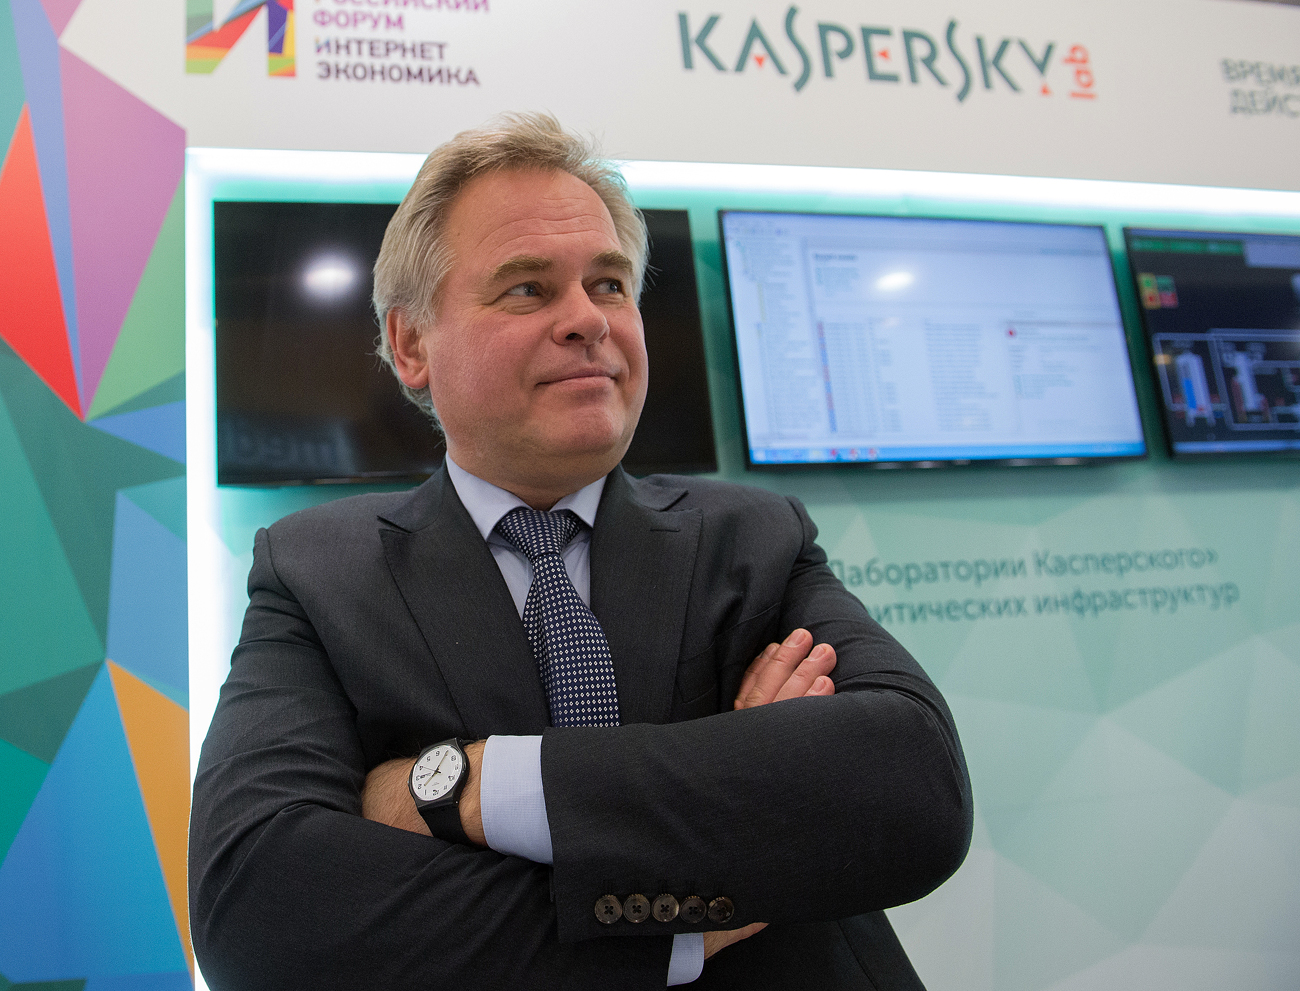 Head of Kaspersky Lab Yevgeny Kaspersky at his company's display stand at the first Russian Internet Economy forum.